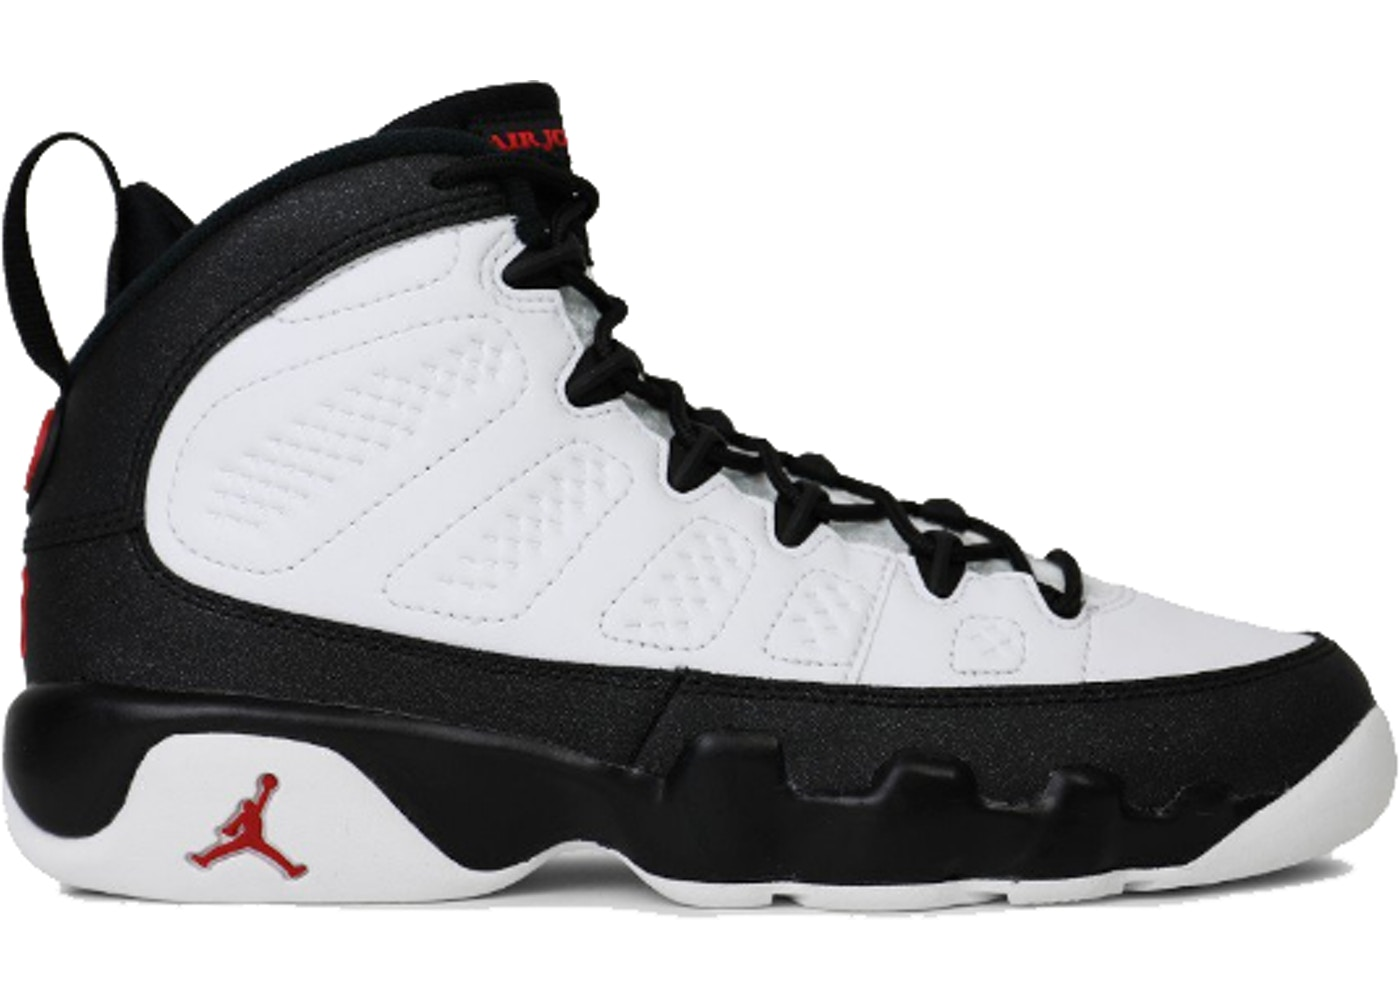 cheap for discount bea7b dd64d Jordan 9 Retro OG 2016 (GS) - 302359-112